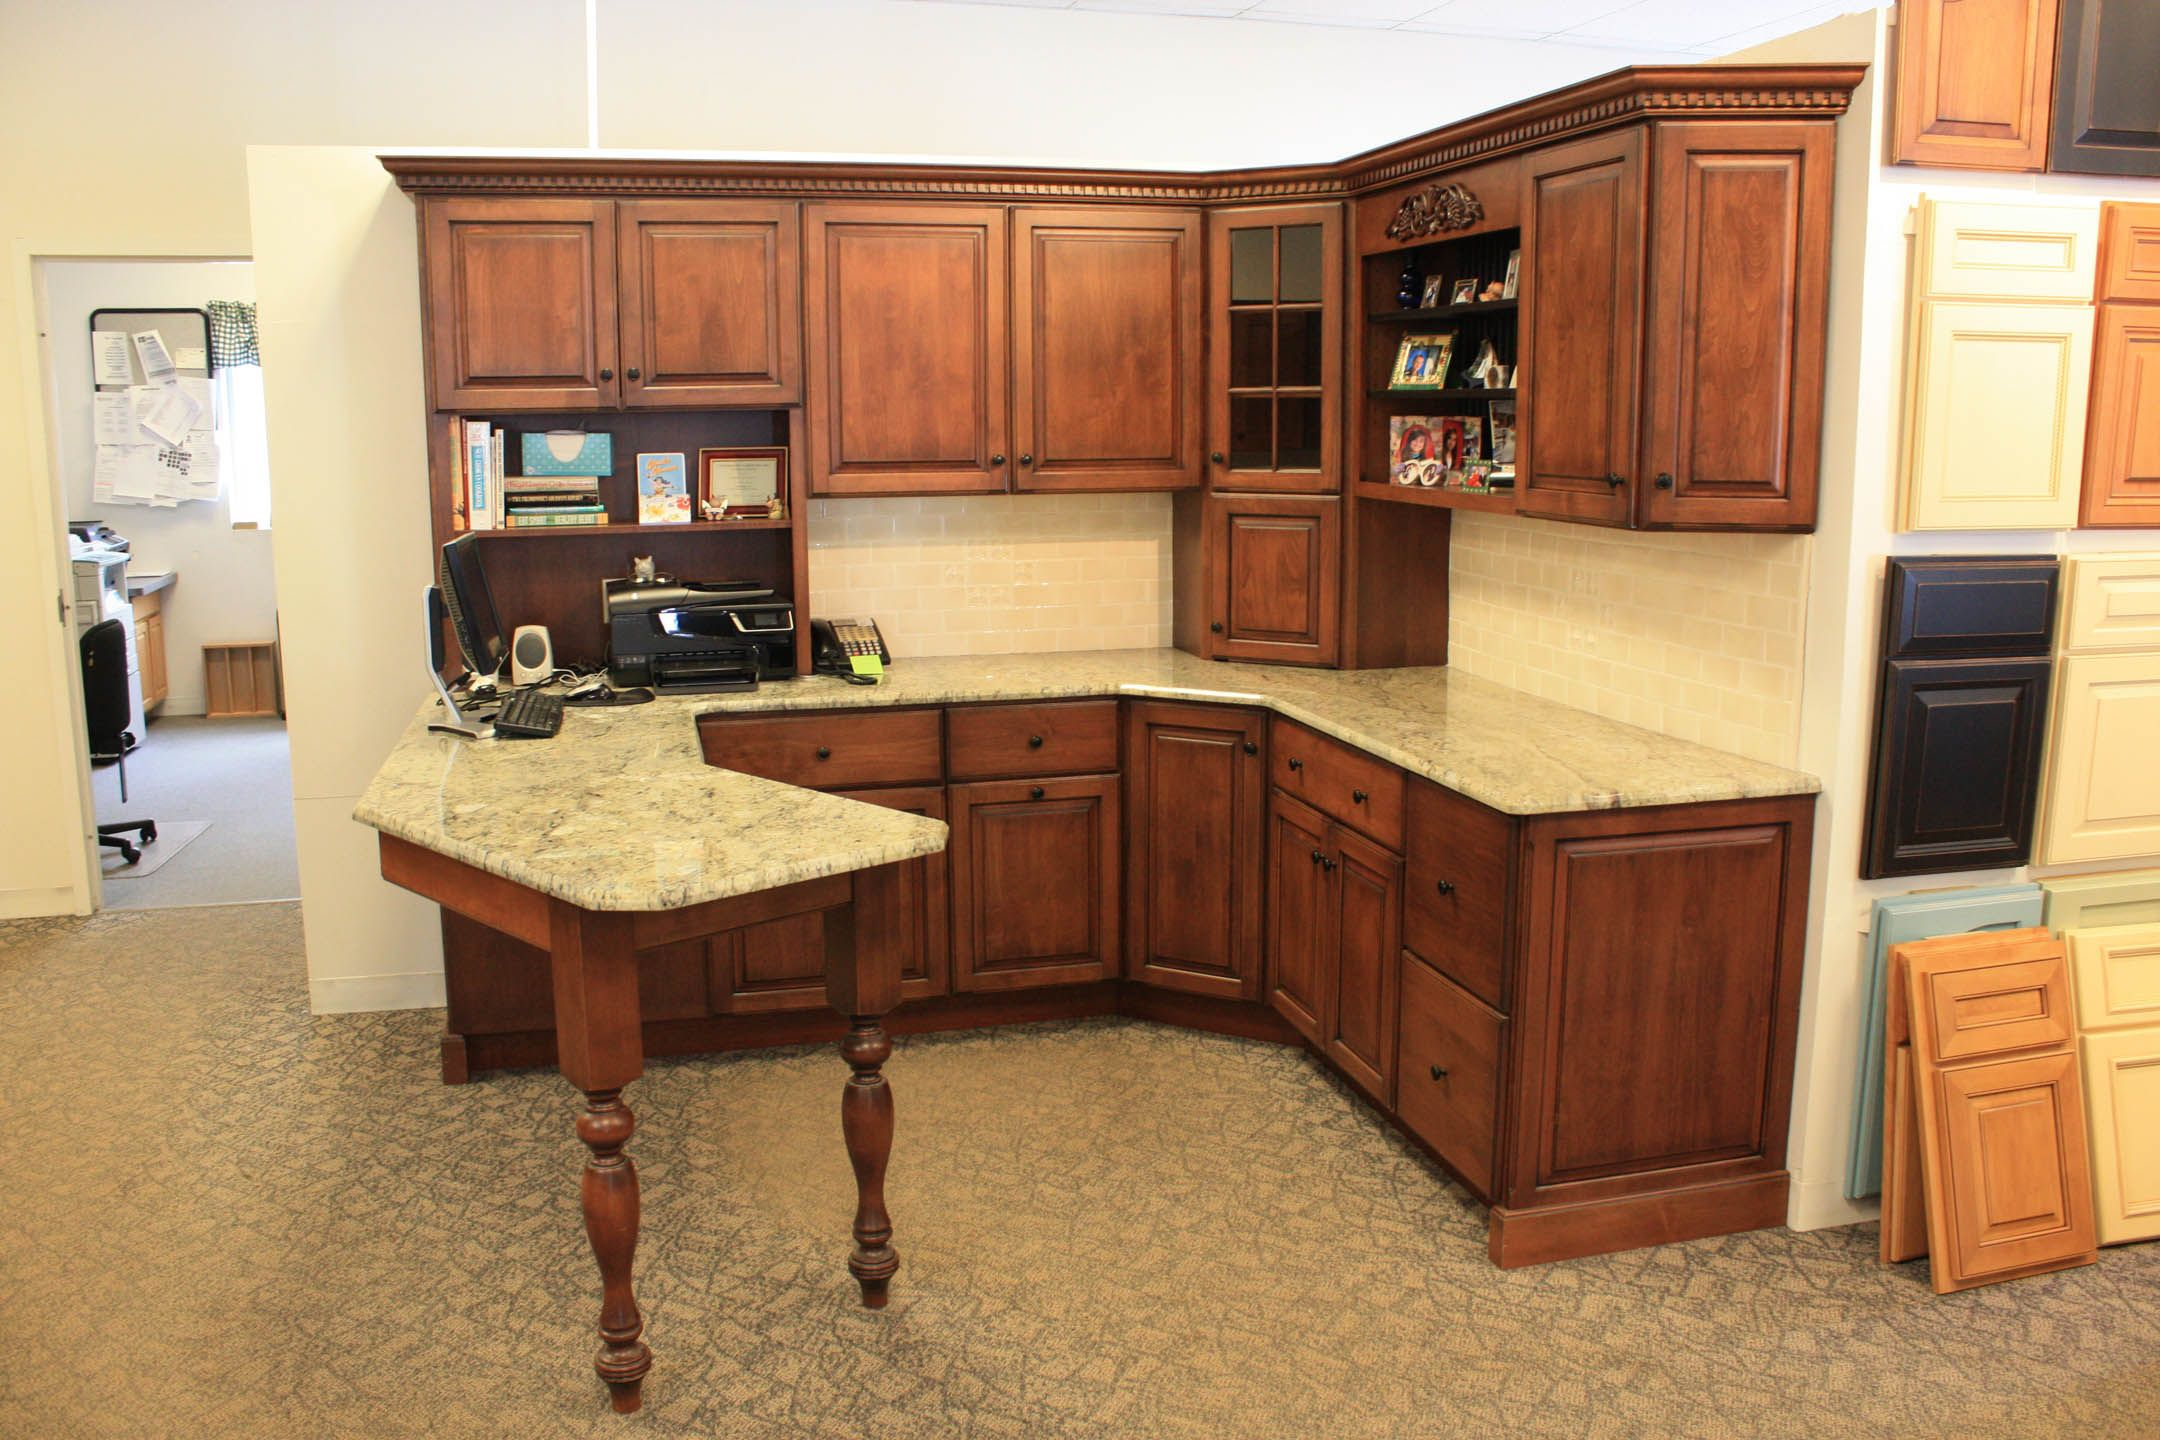 This Beautiful Home Office Display Features Custom Candlelight Cabinetry This Office Is Fully Loaded With F Candlelight Cabinetry Kitchen Renovation Cabinet